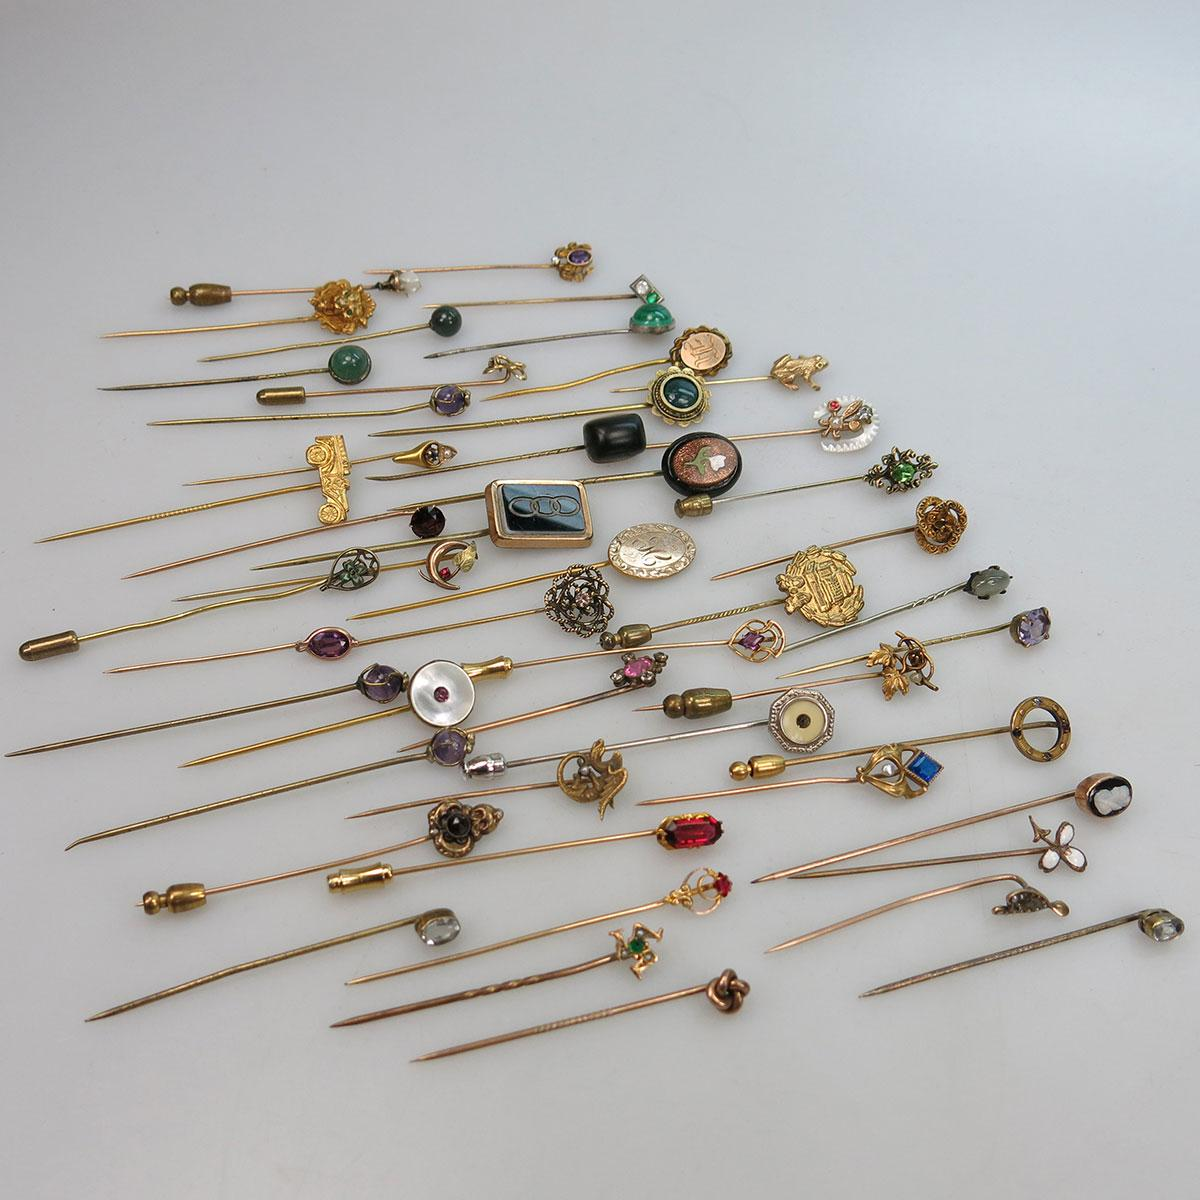 64 Various Gold-Filled And Silver Stickpins